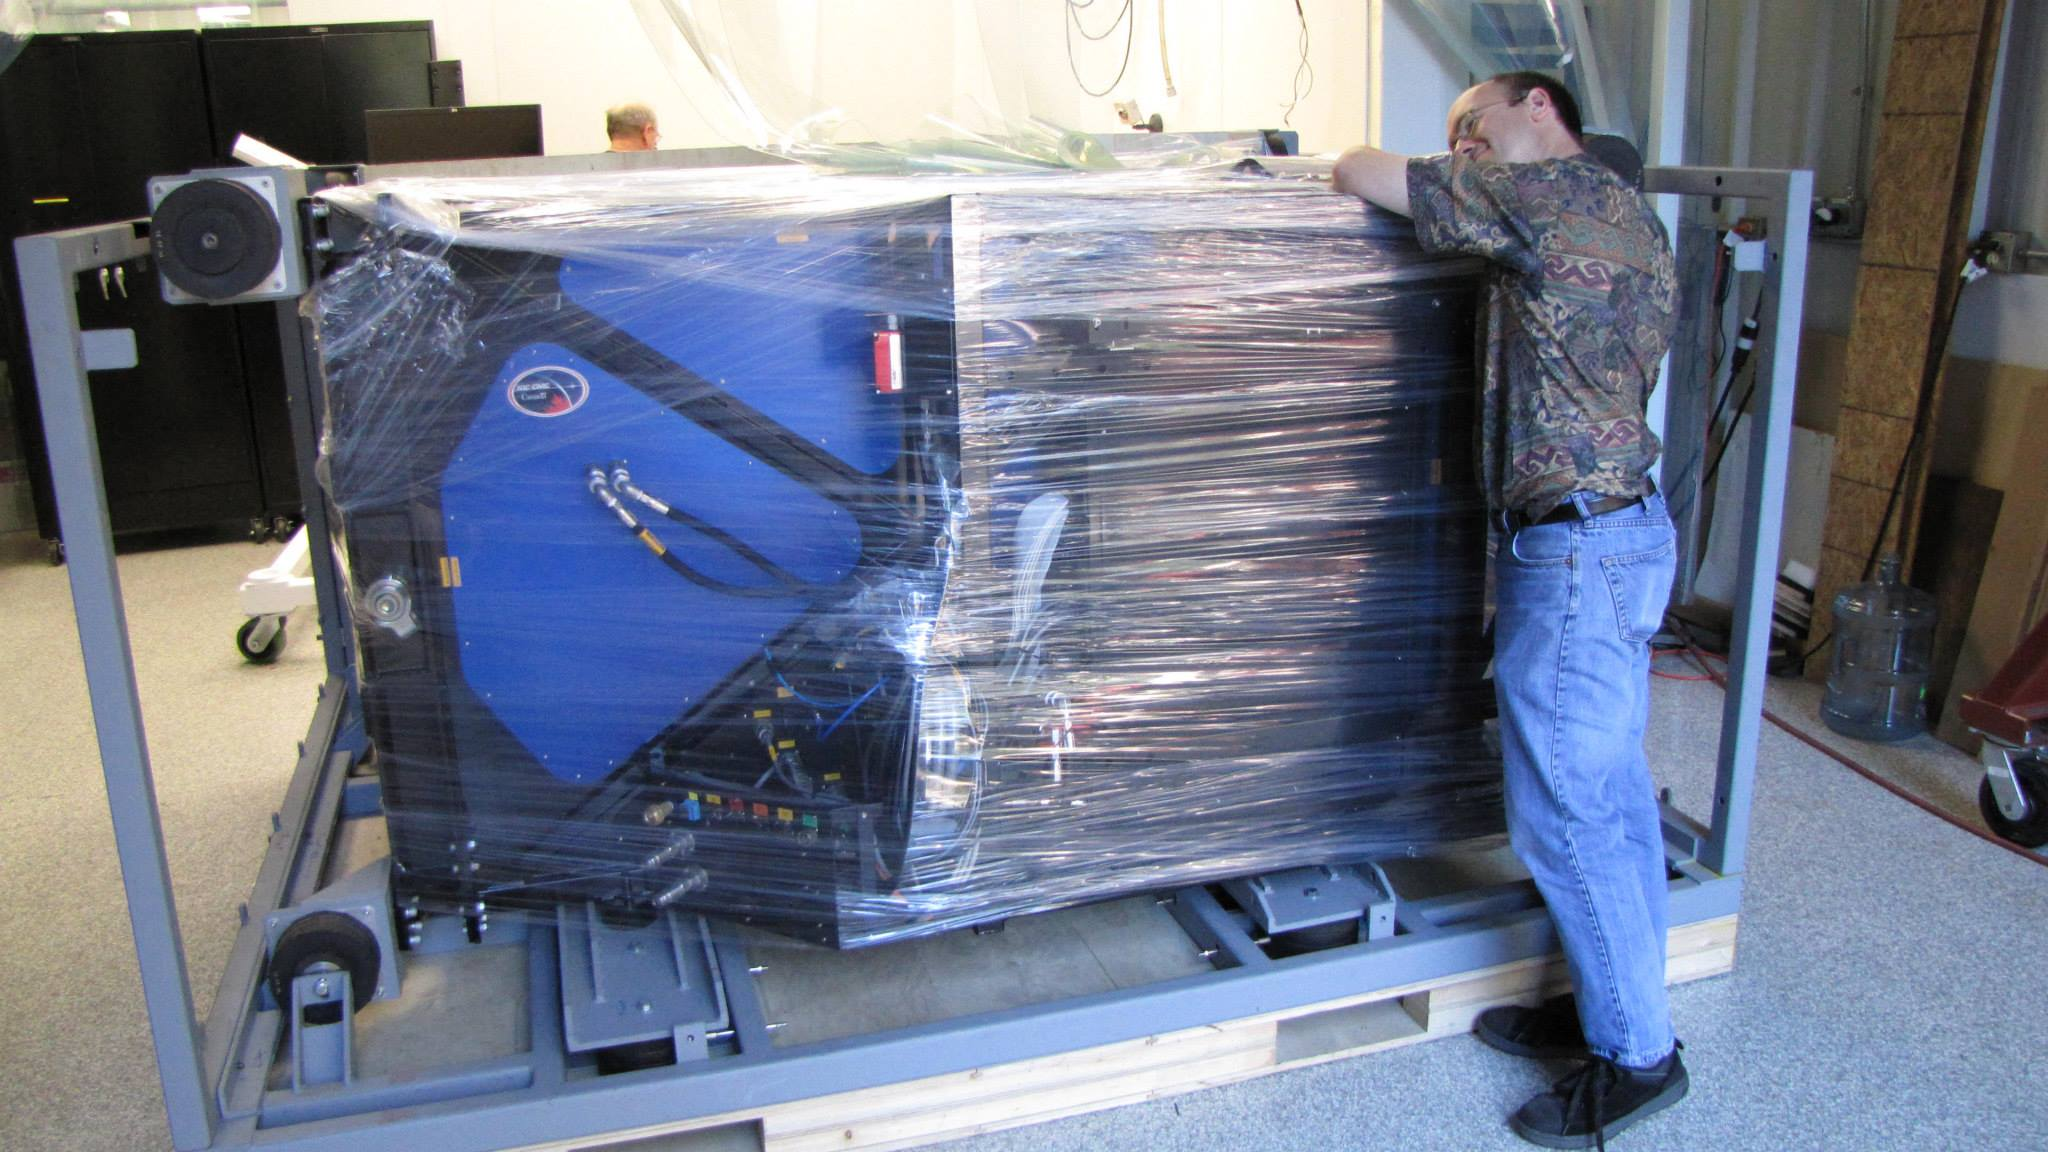 Bruce Macintosh, Principal Investigator of the instrument having a little moment of separation anxiety during the packing.